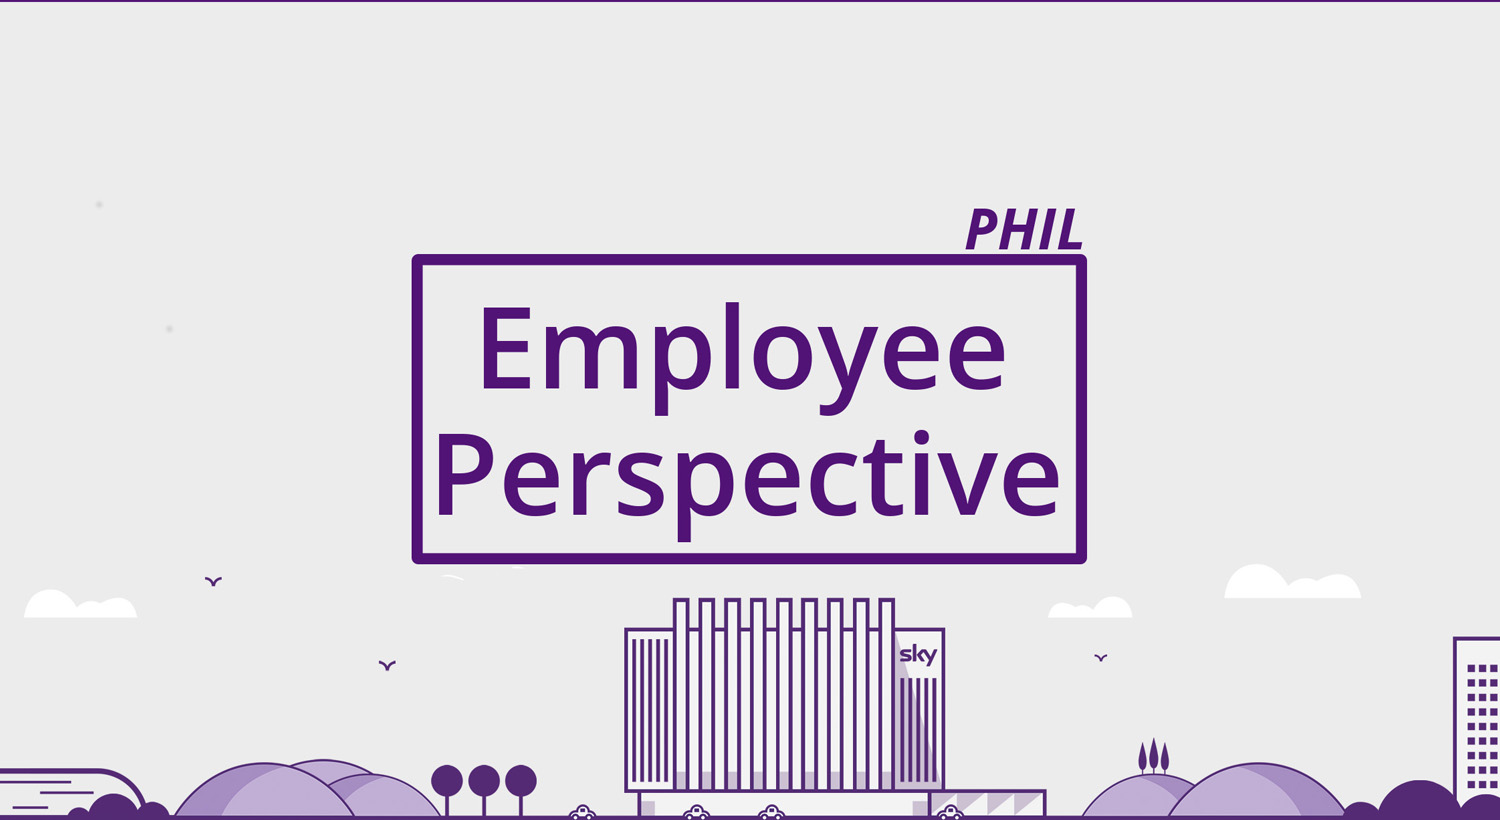 Employee Perspective -Phil